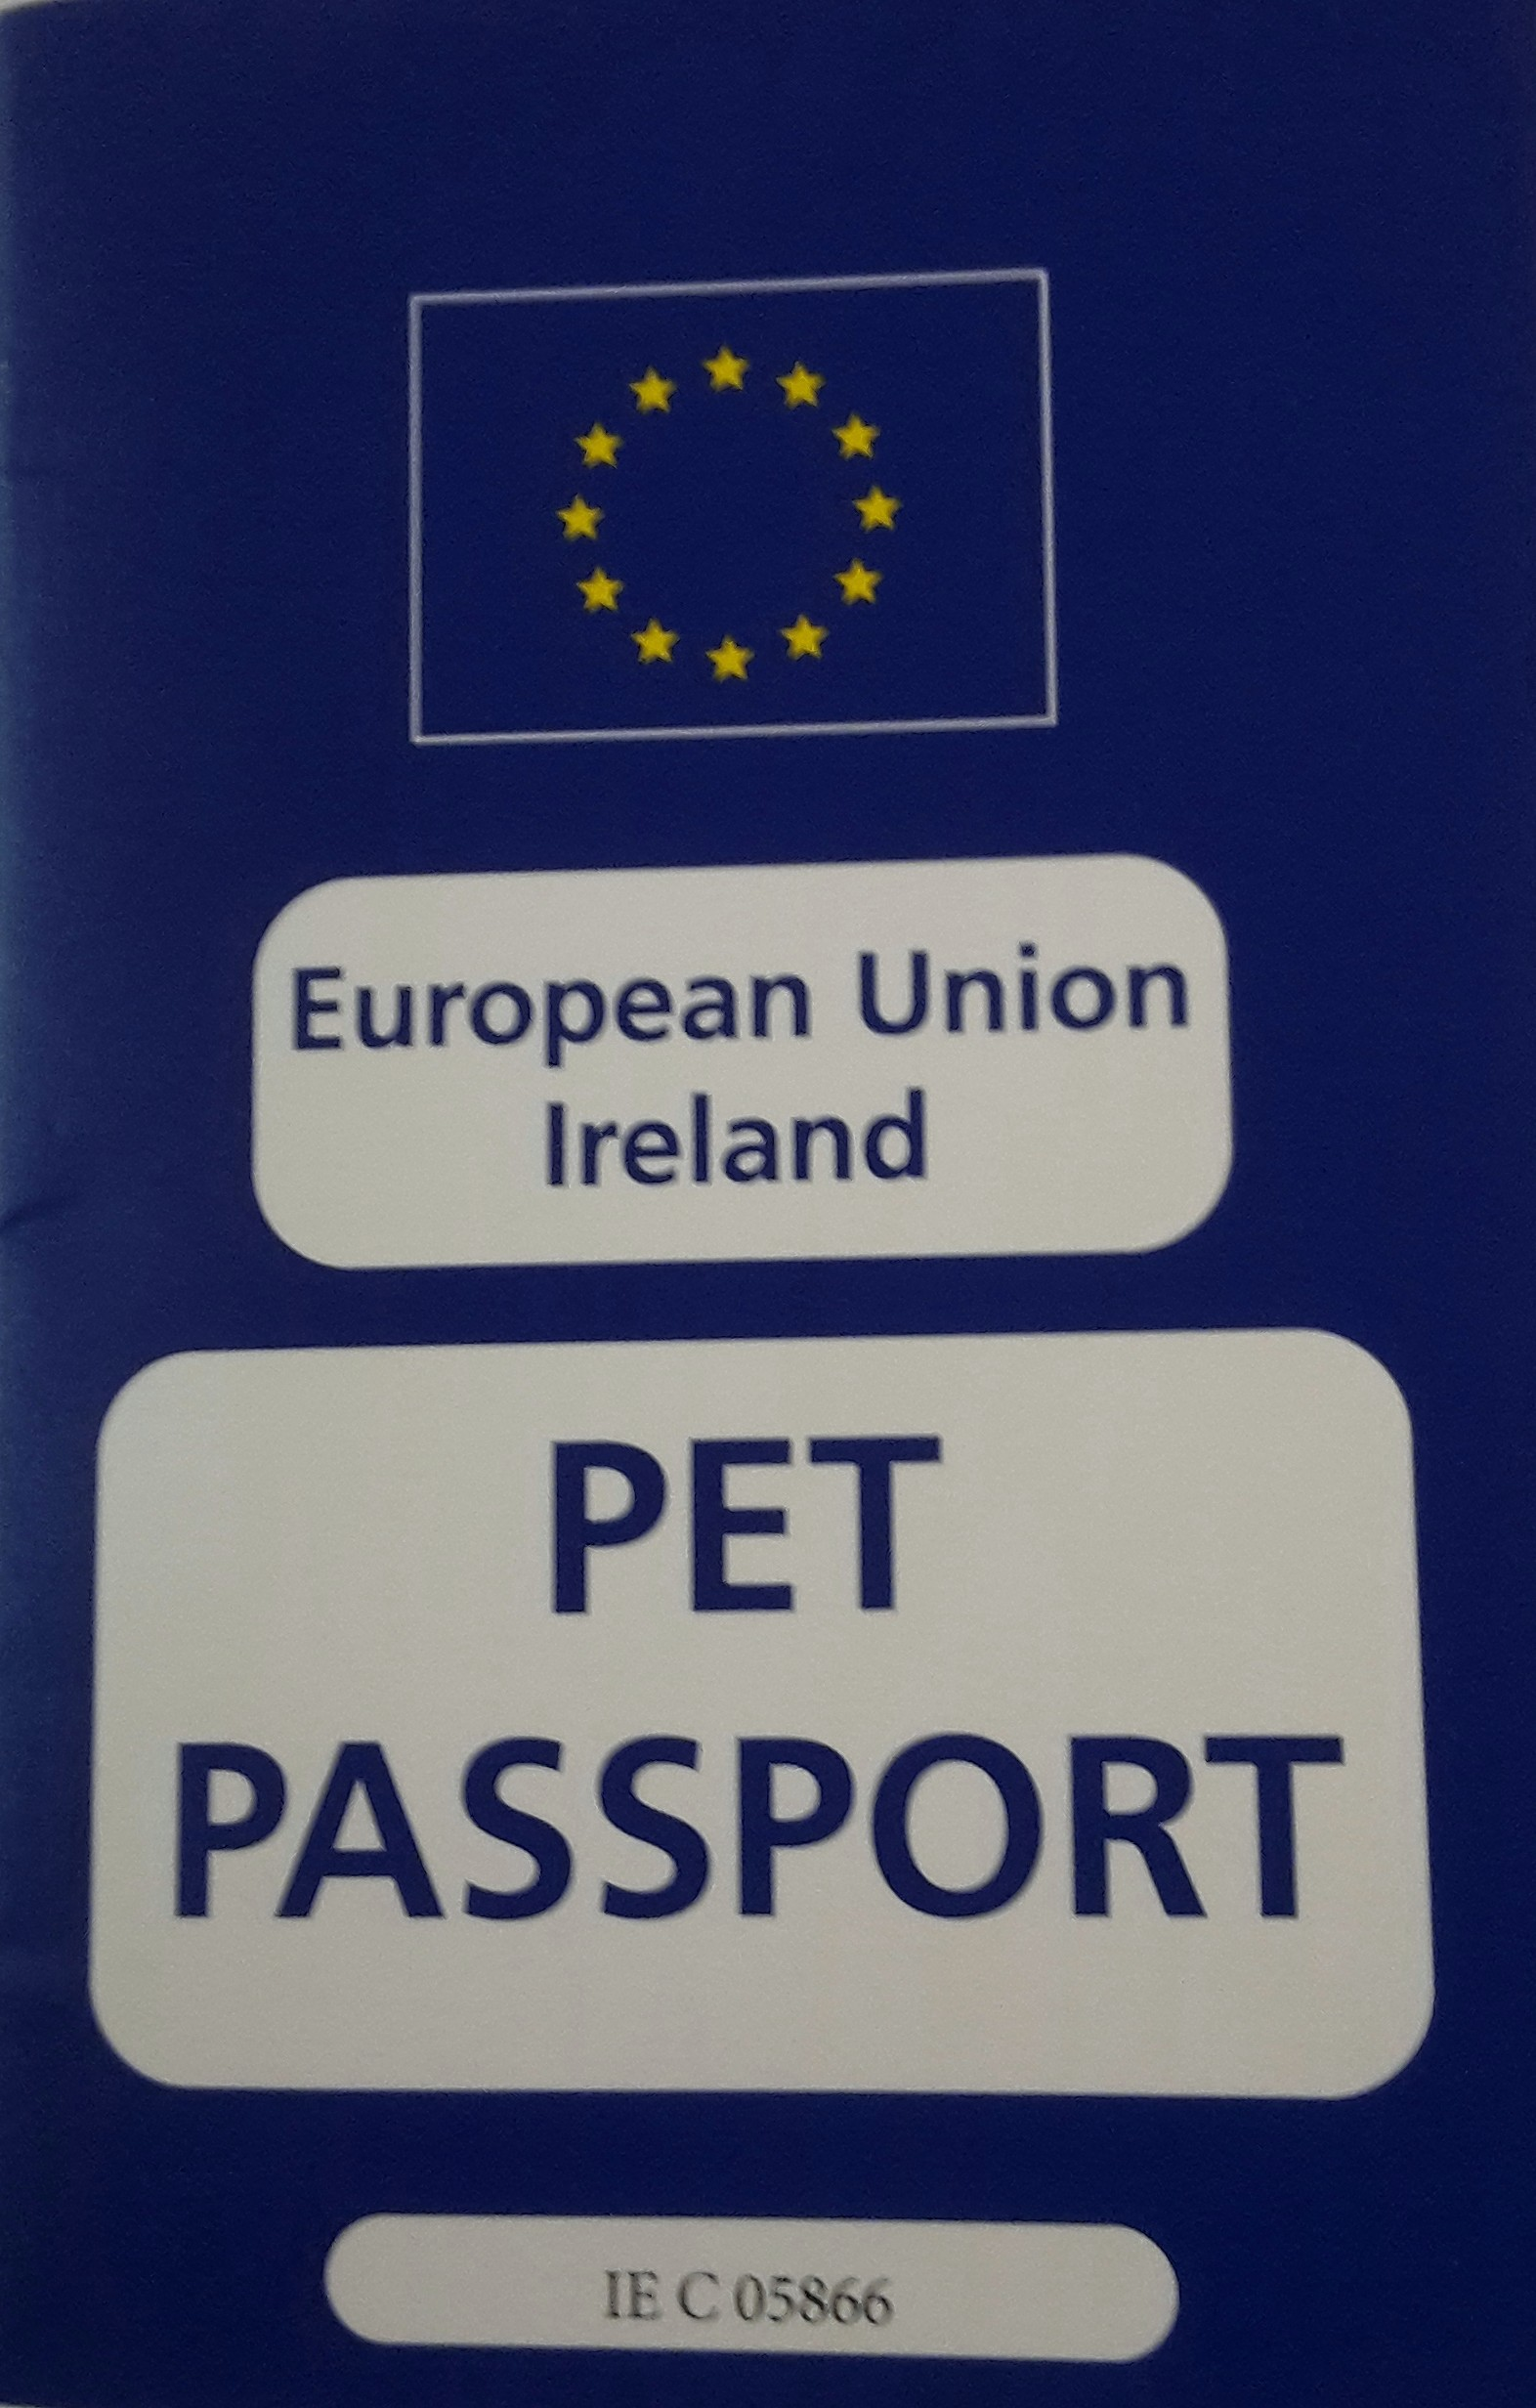 European Pet Passport